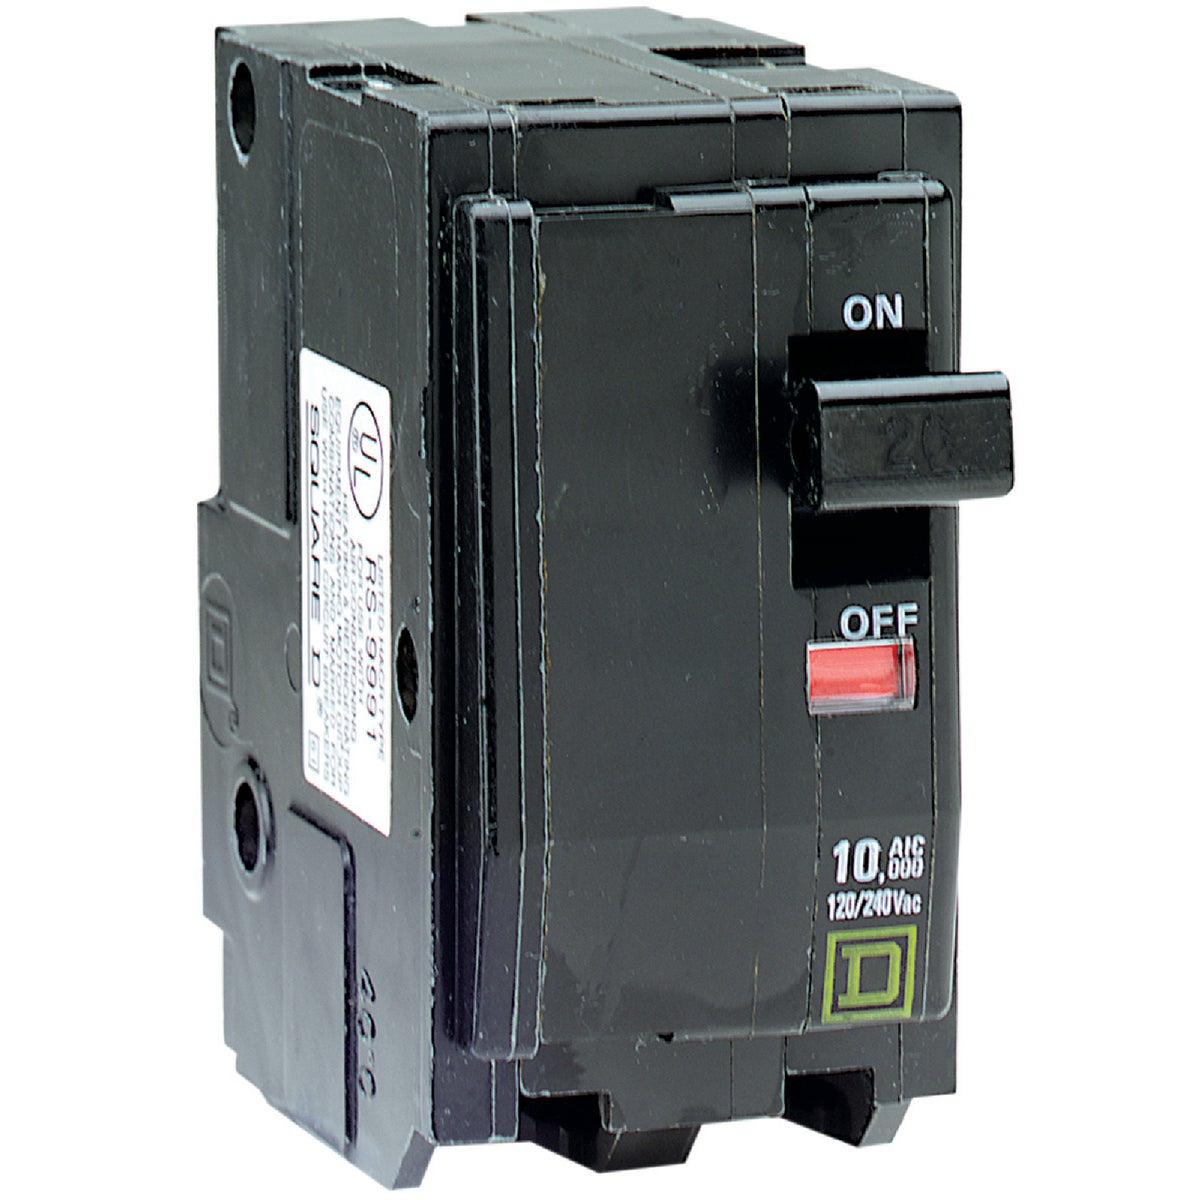 15A 2P CIRCUIT BREAKER - QO215CP by Square D Co